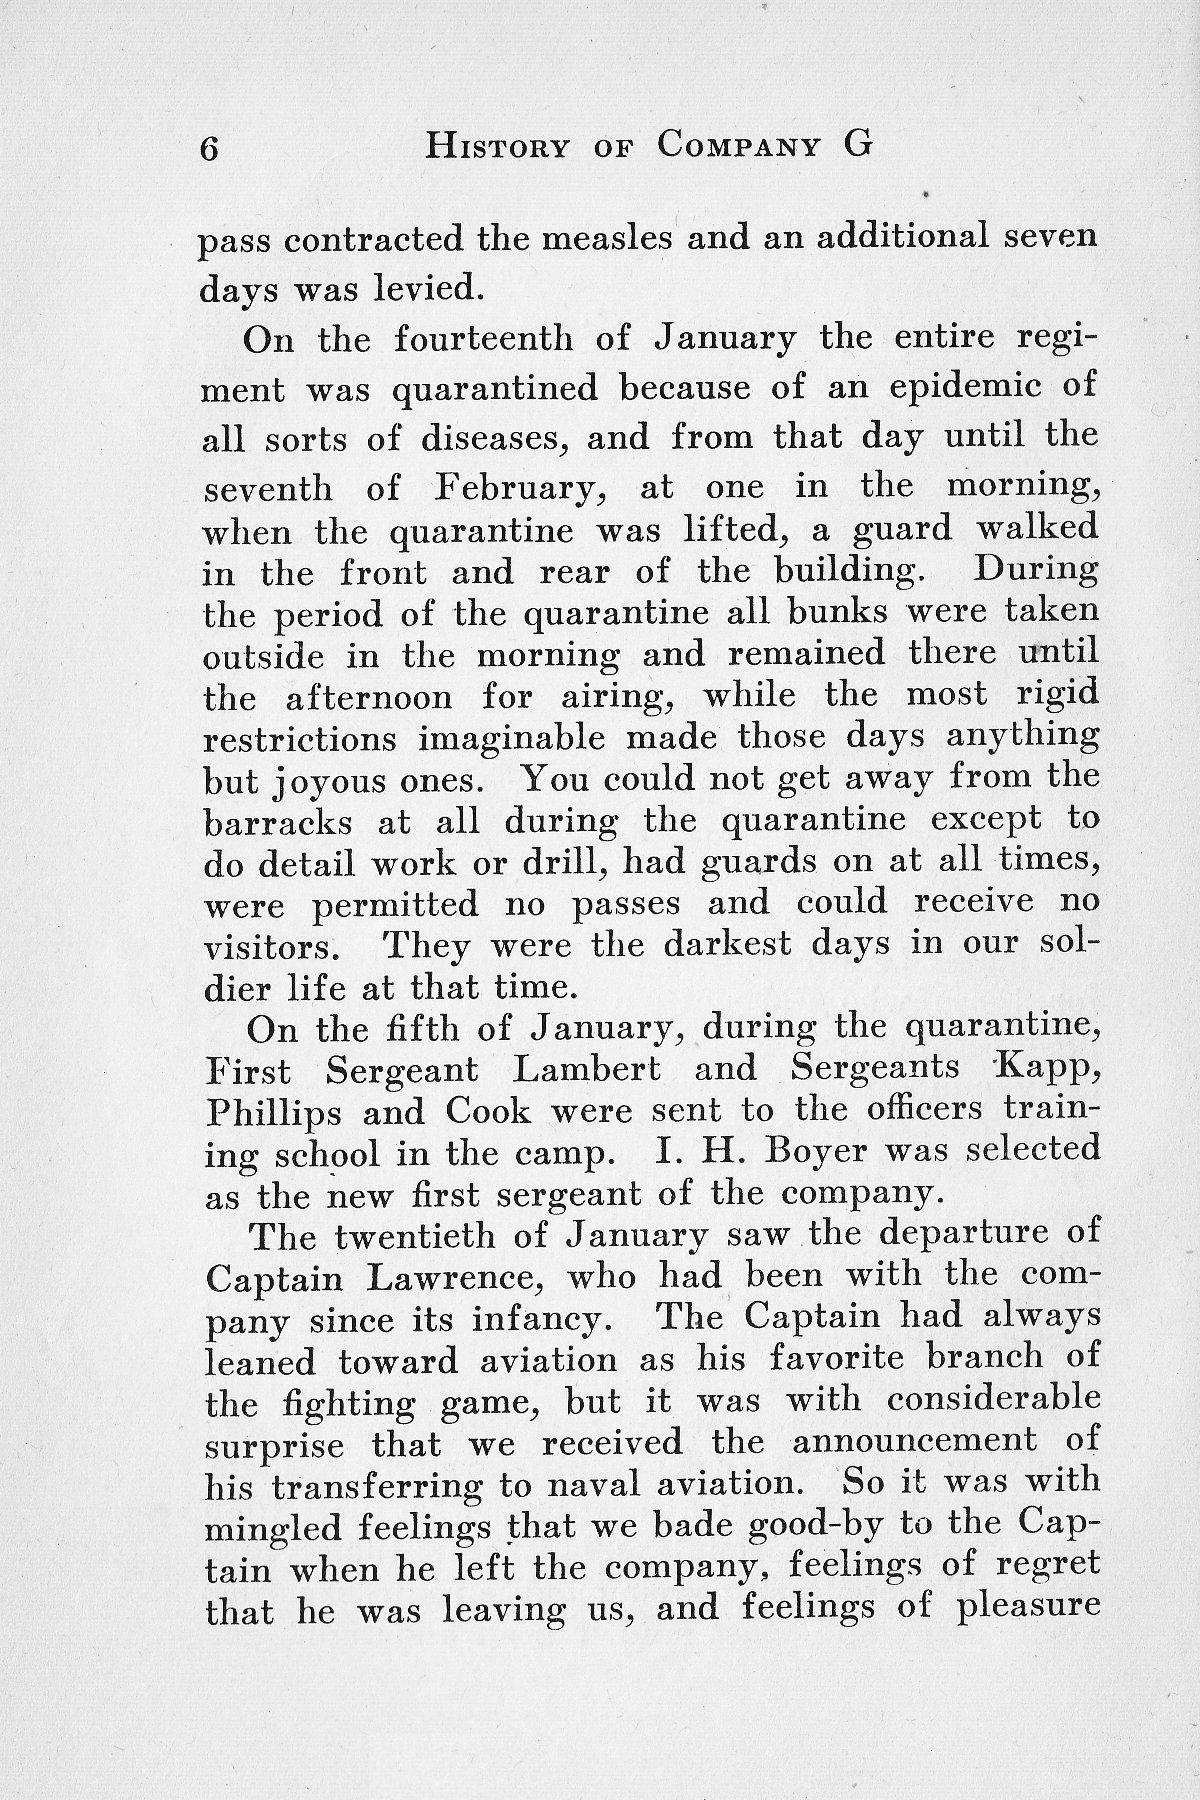 History of Company G 314th Infanty - Page 006